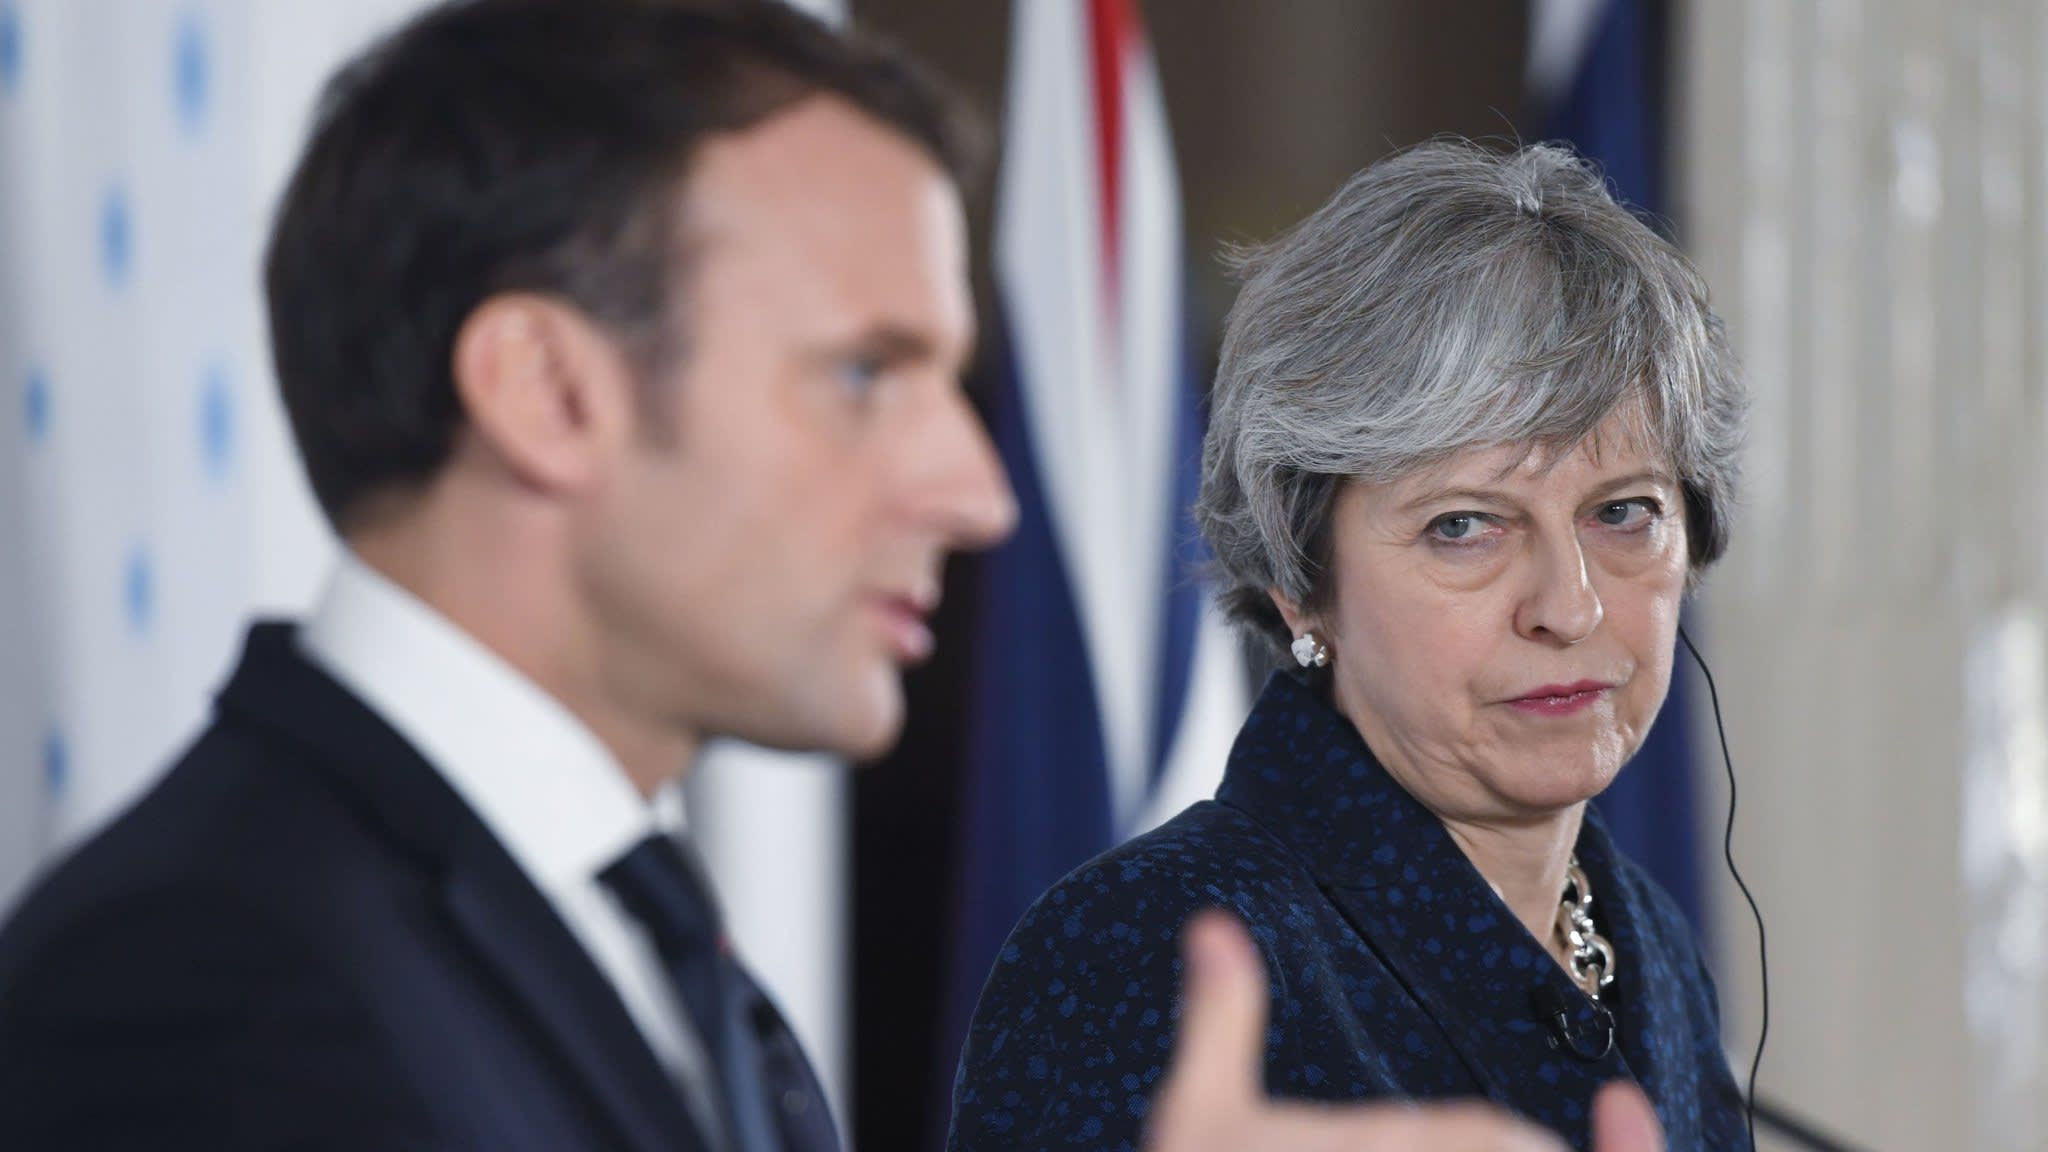 May to meet Macron over France's approach to Brexit